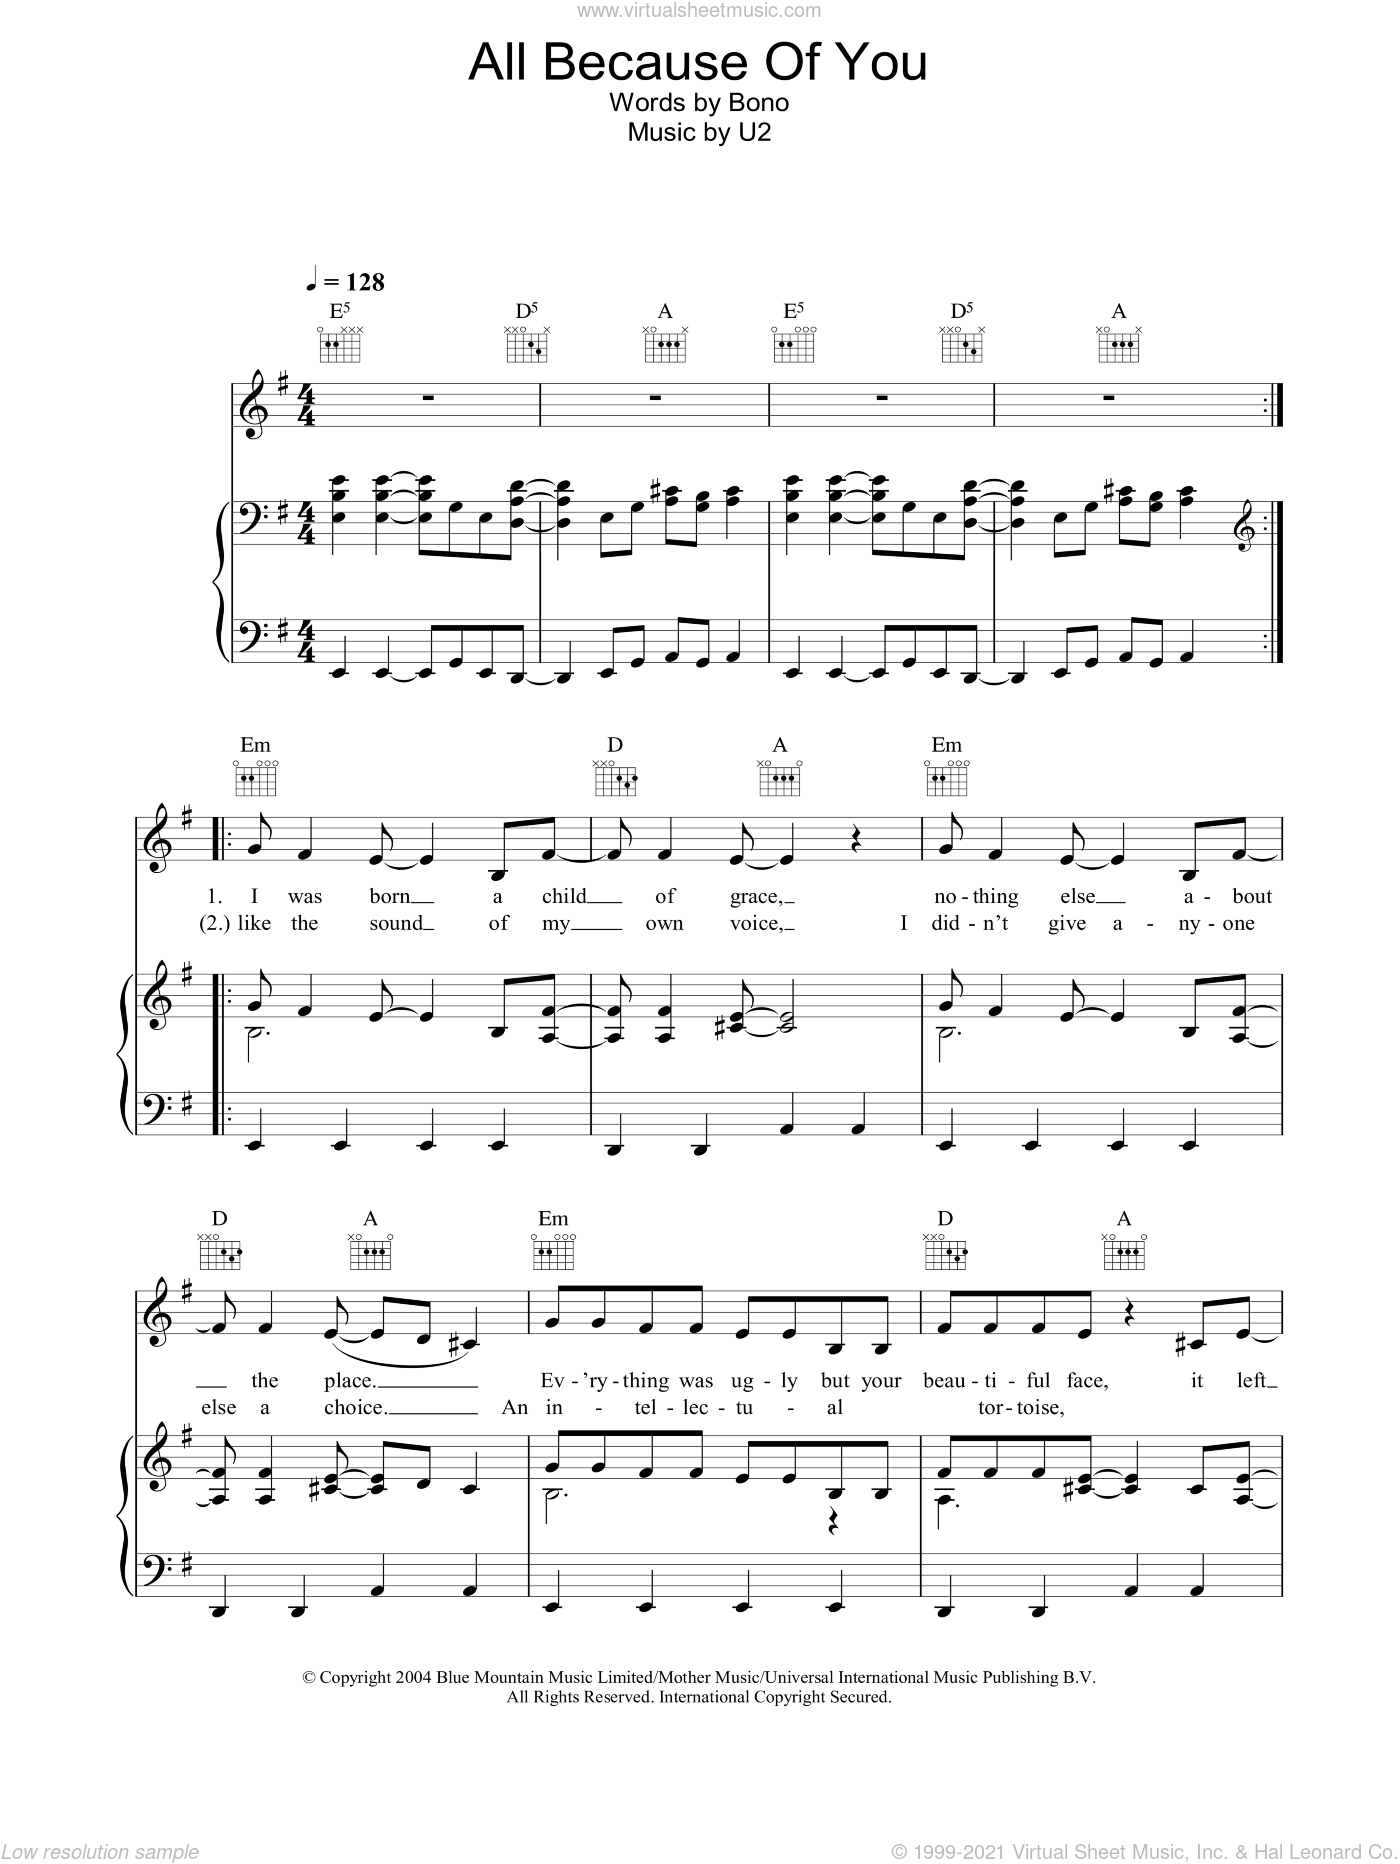 All Because Of You sheet music for voice, piano or guitar by U2 and Bono, intermediate skill level